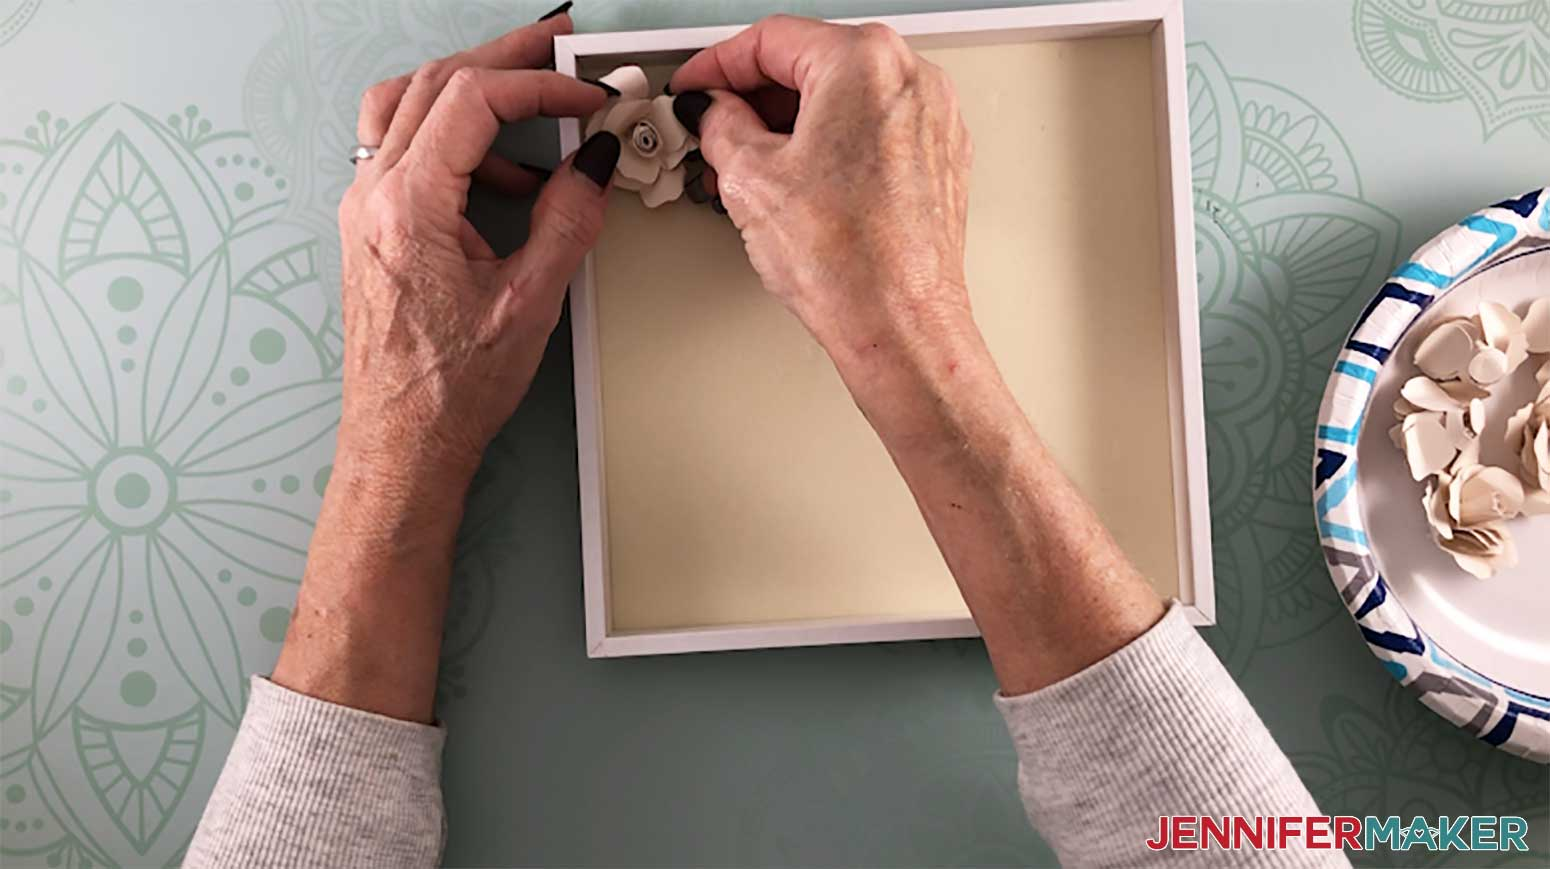 Gluing the paper flowers inside the shadow box